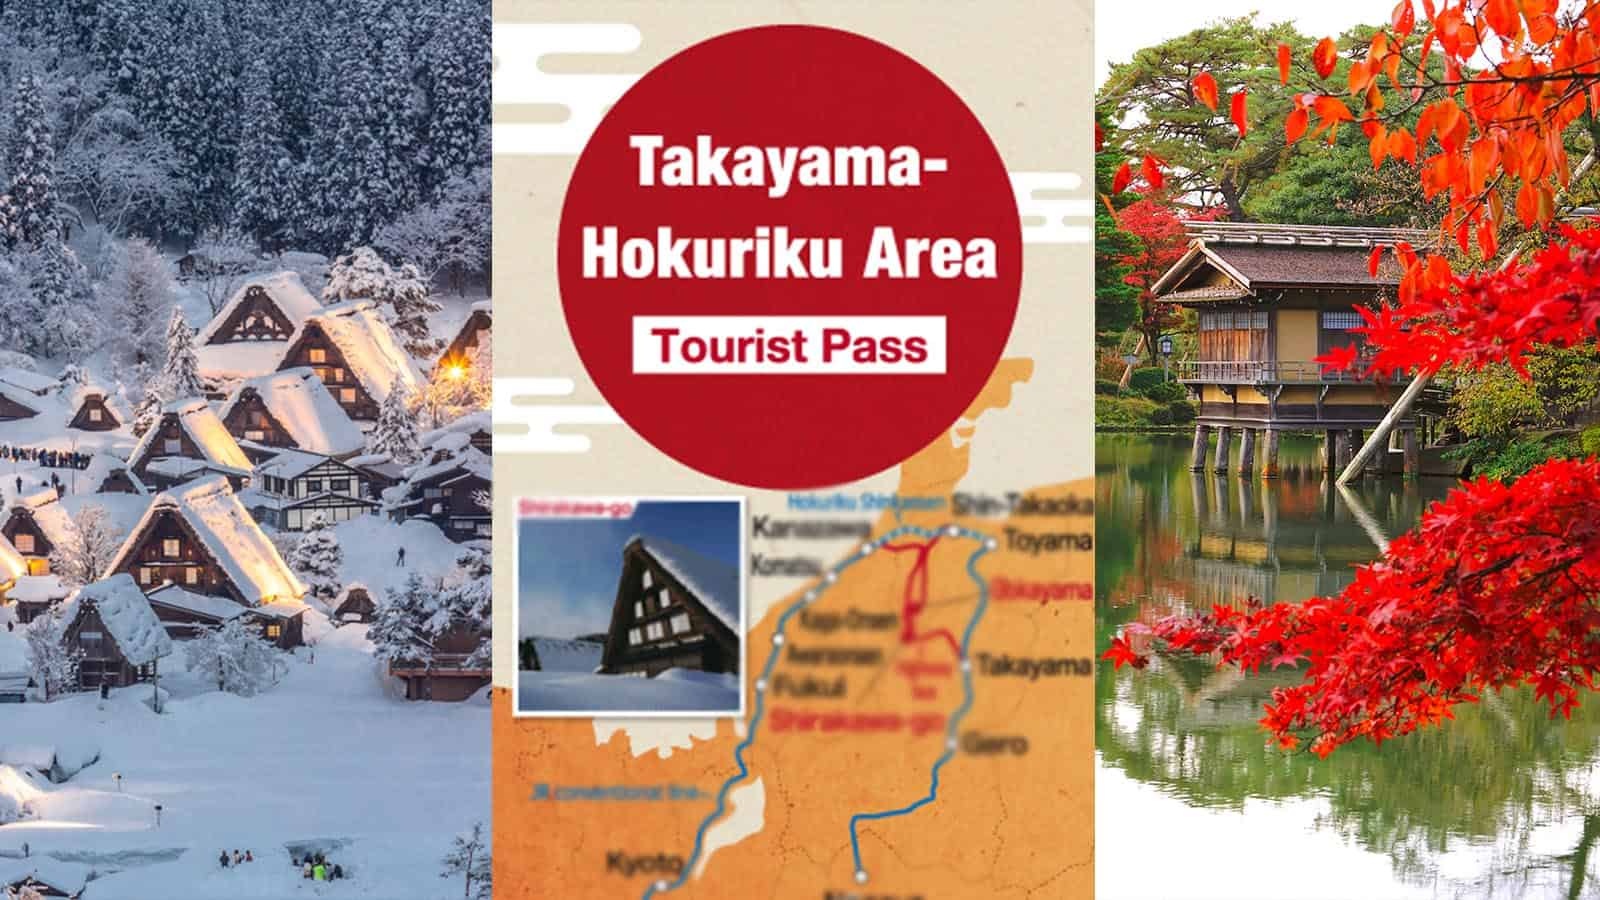 JR TAKAYAMA-HOKURIKU AREA TOURIST PASS: Where to Buy, How to Use